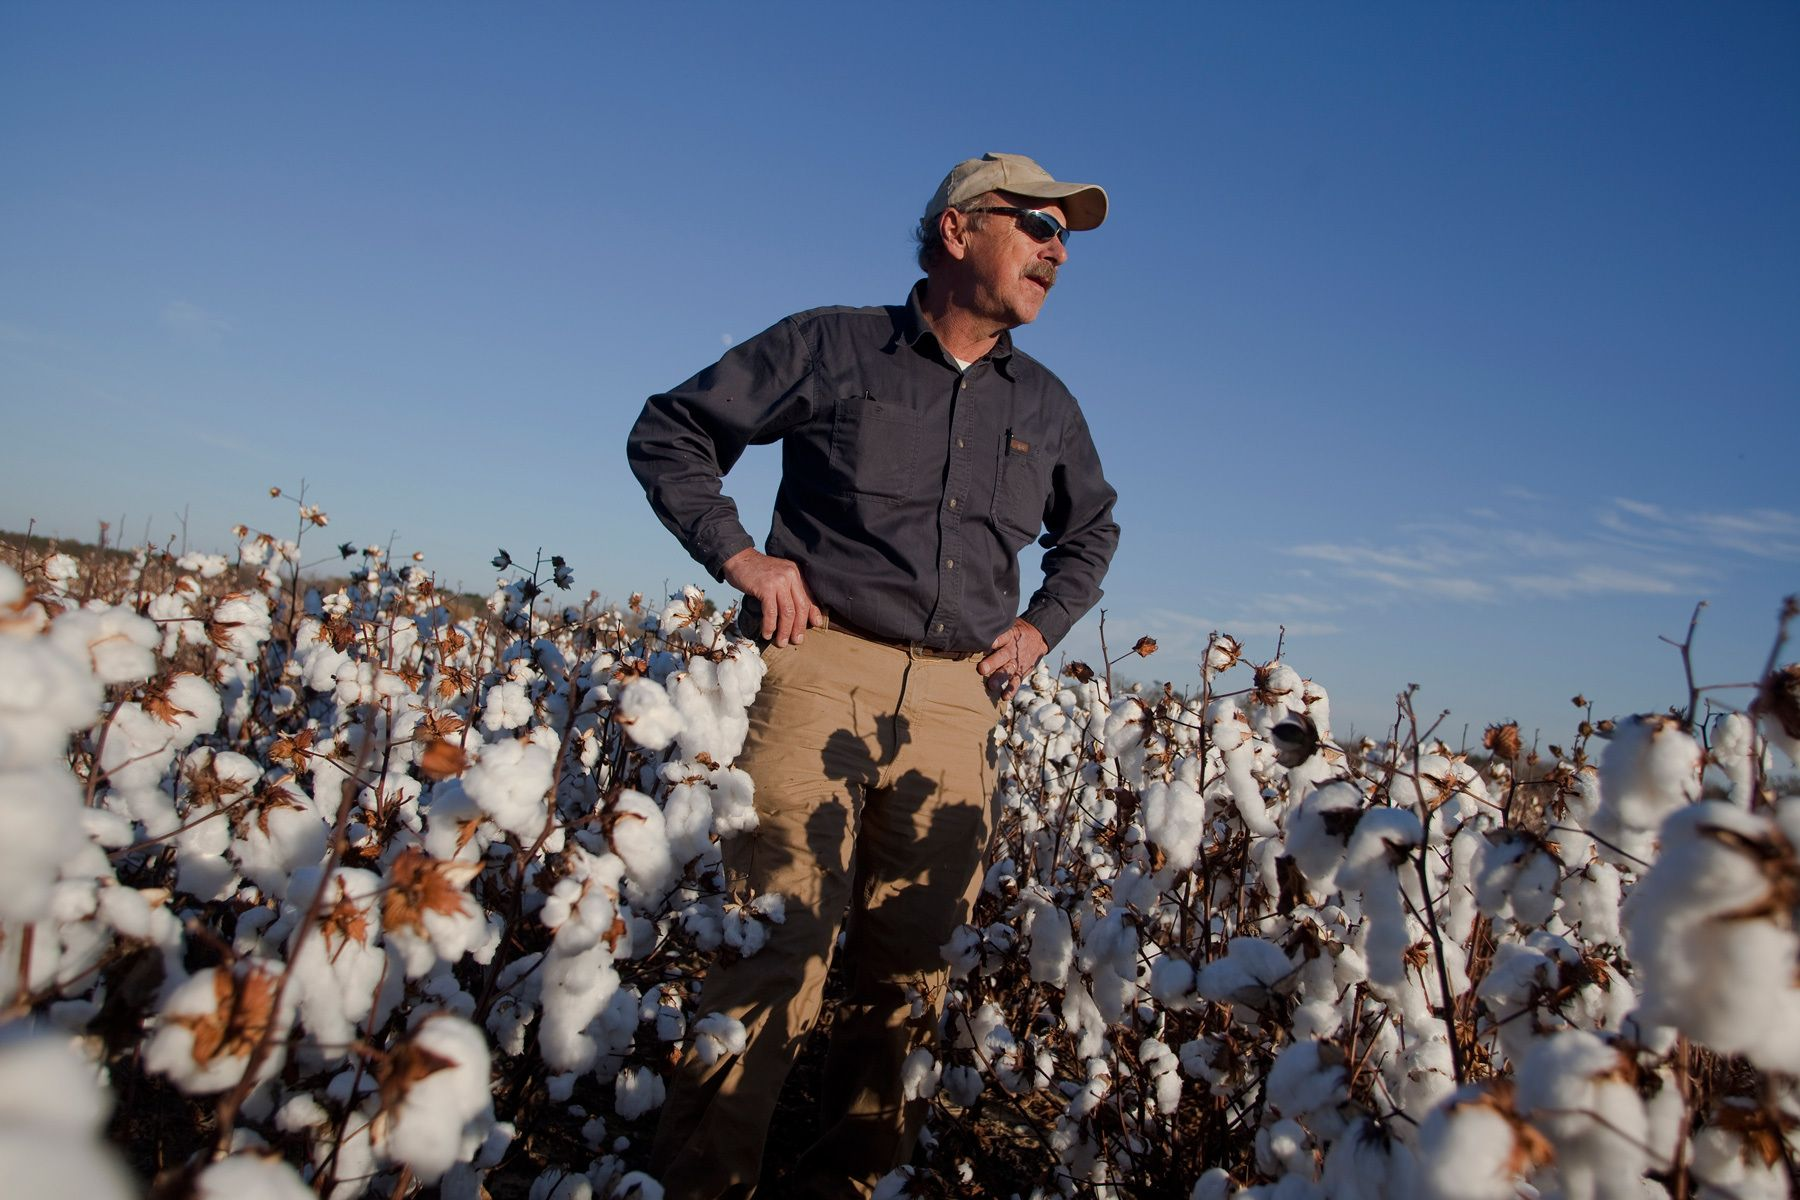 Farmer Roy Baxley, Jr. watches over the cotton harvest as he stands in a field of cotton in Minturn, South Carolina November 24, 2012. At the age of 18, Baxley took over the family farm after his father died from a sudden heart attack. He was forced to leave college and change the direction of his life or liquify the family farm.  REUTERS/Randall Hill (UNITED STATES)